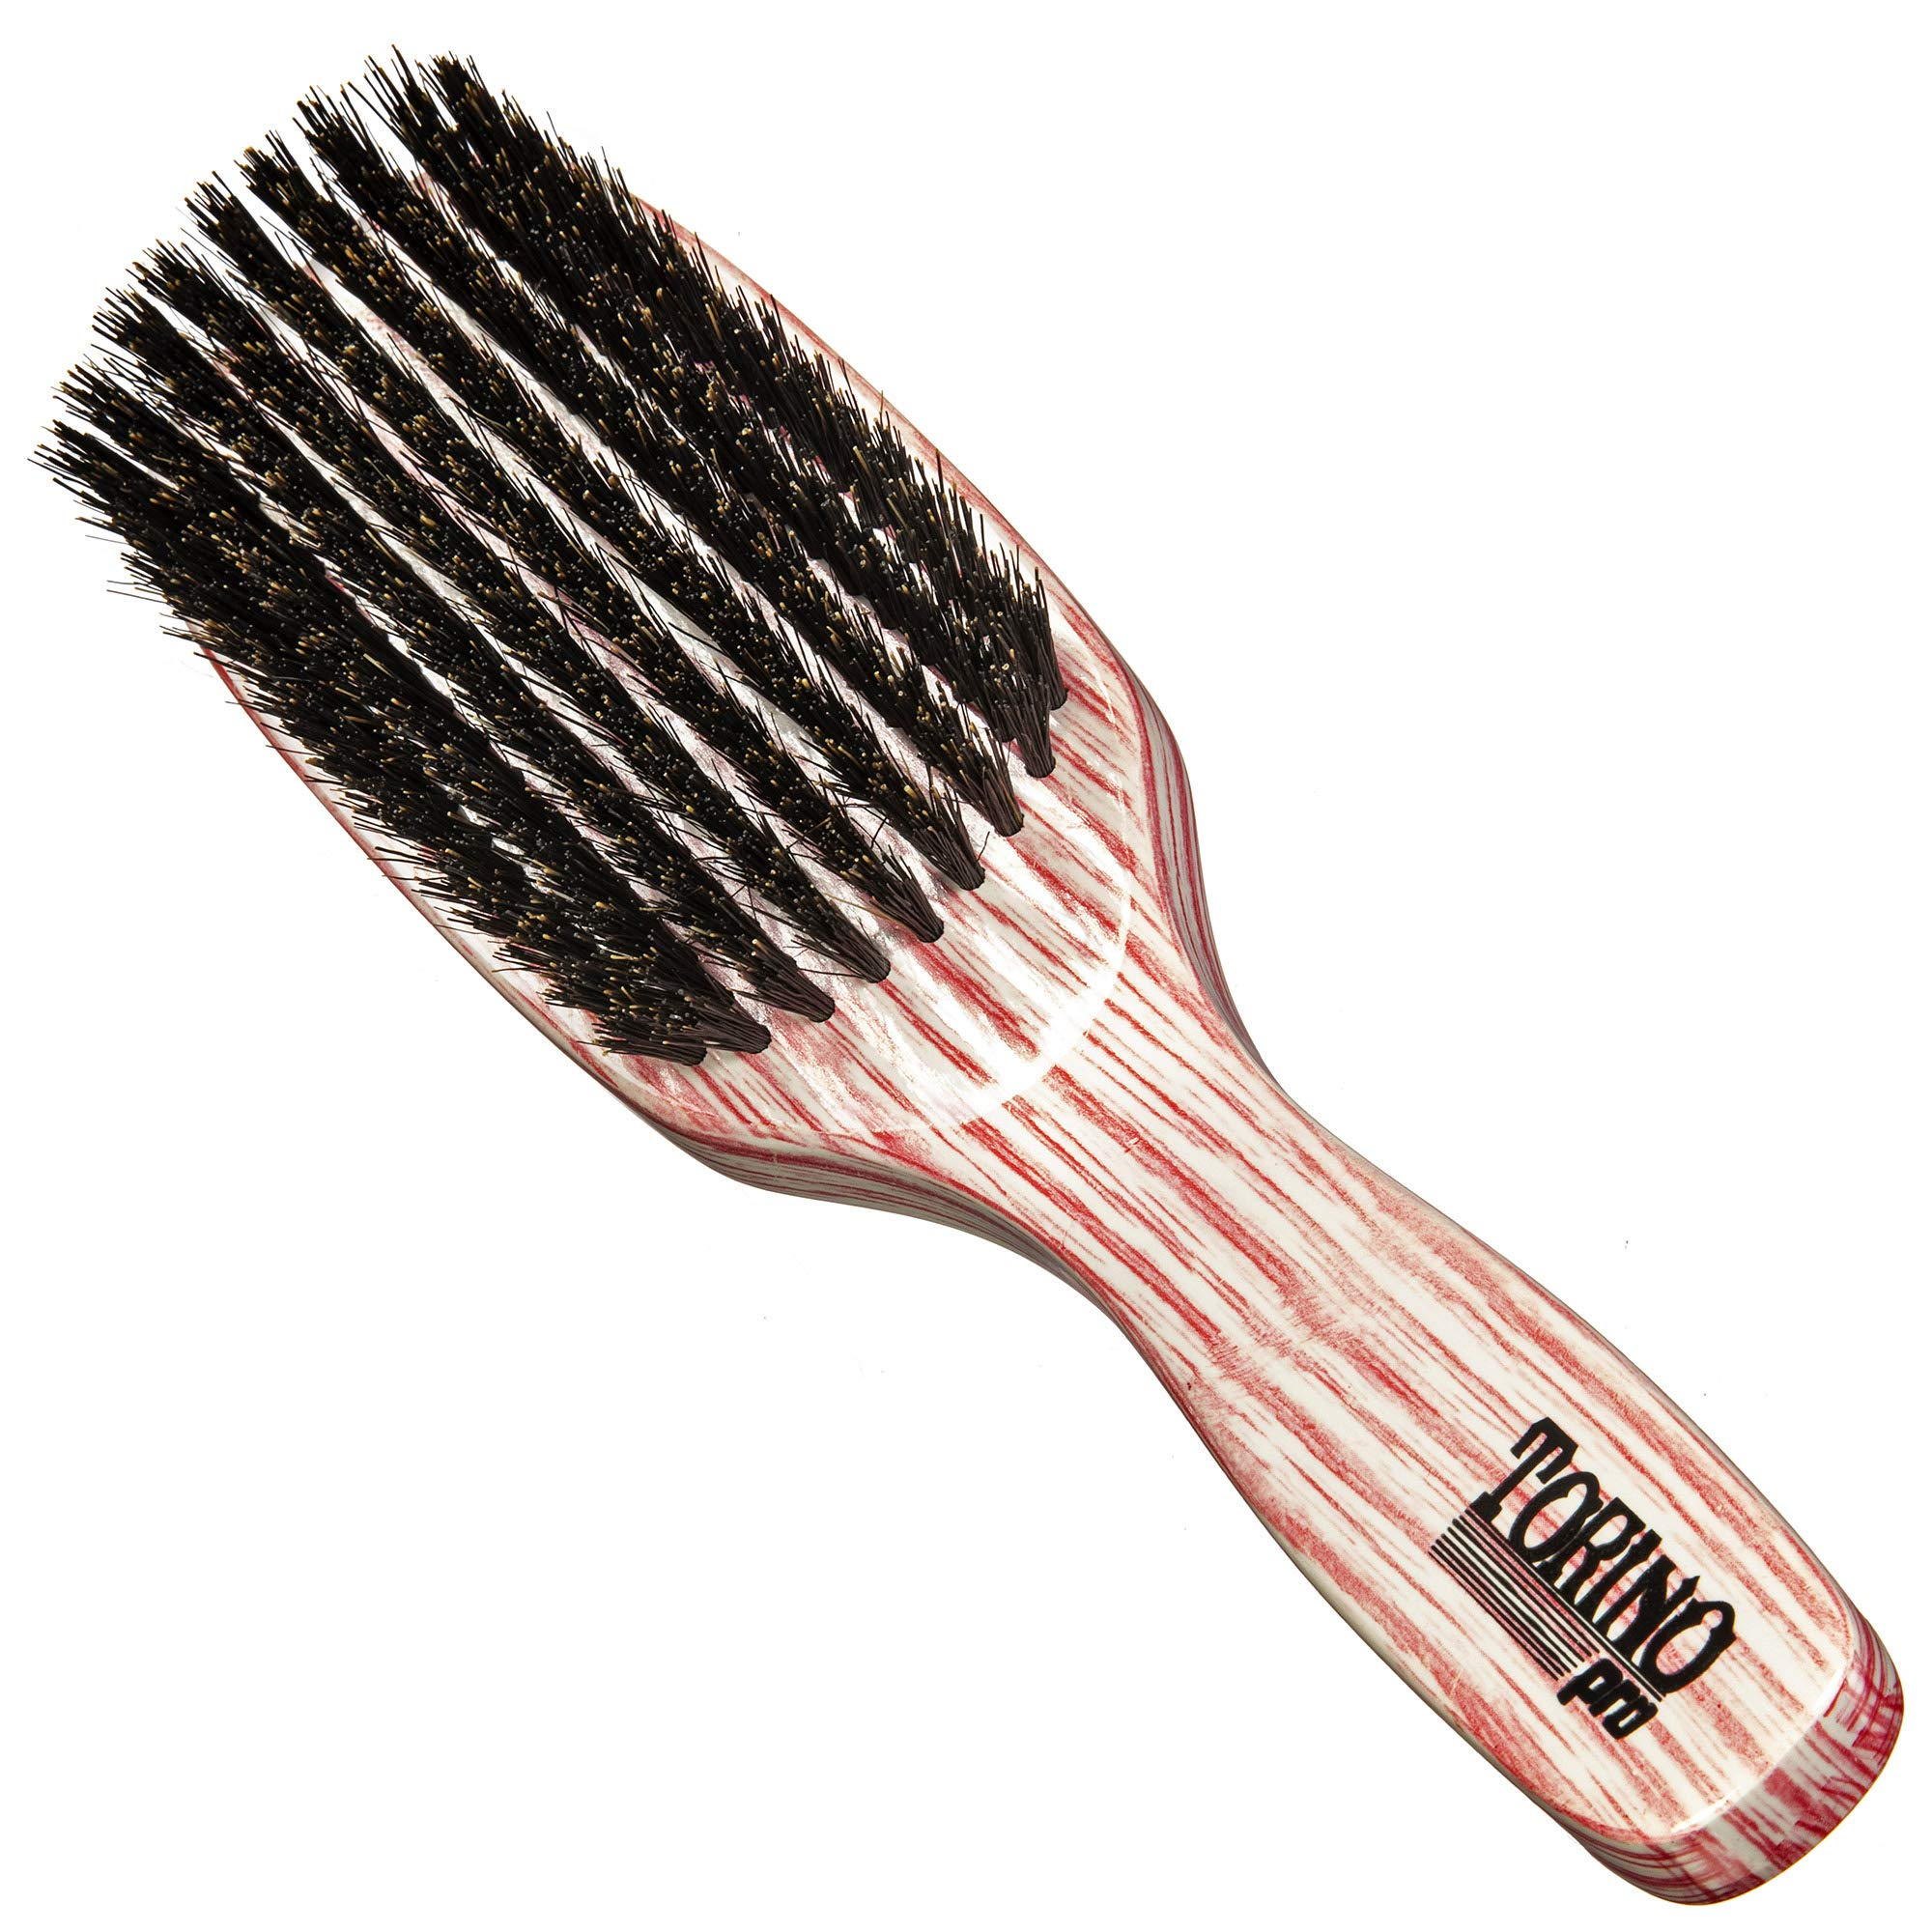 Torino Pro Medium Brush #2010- 9 row Medium Bristles hair brush for men -100% medium boar bristles - Great for wolfing and Connections for 360 Waves - Great for vertical brushing